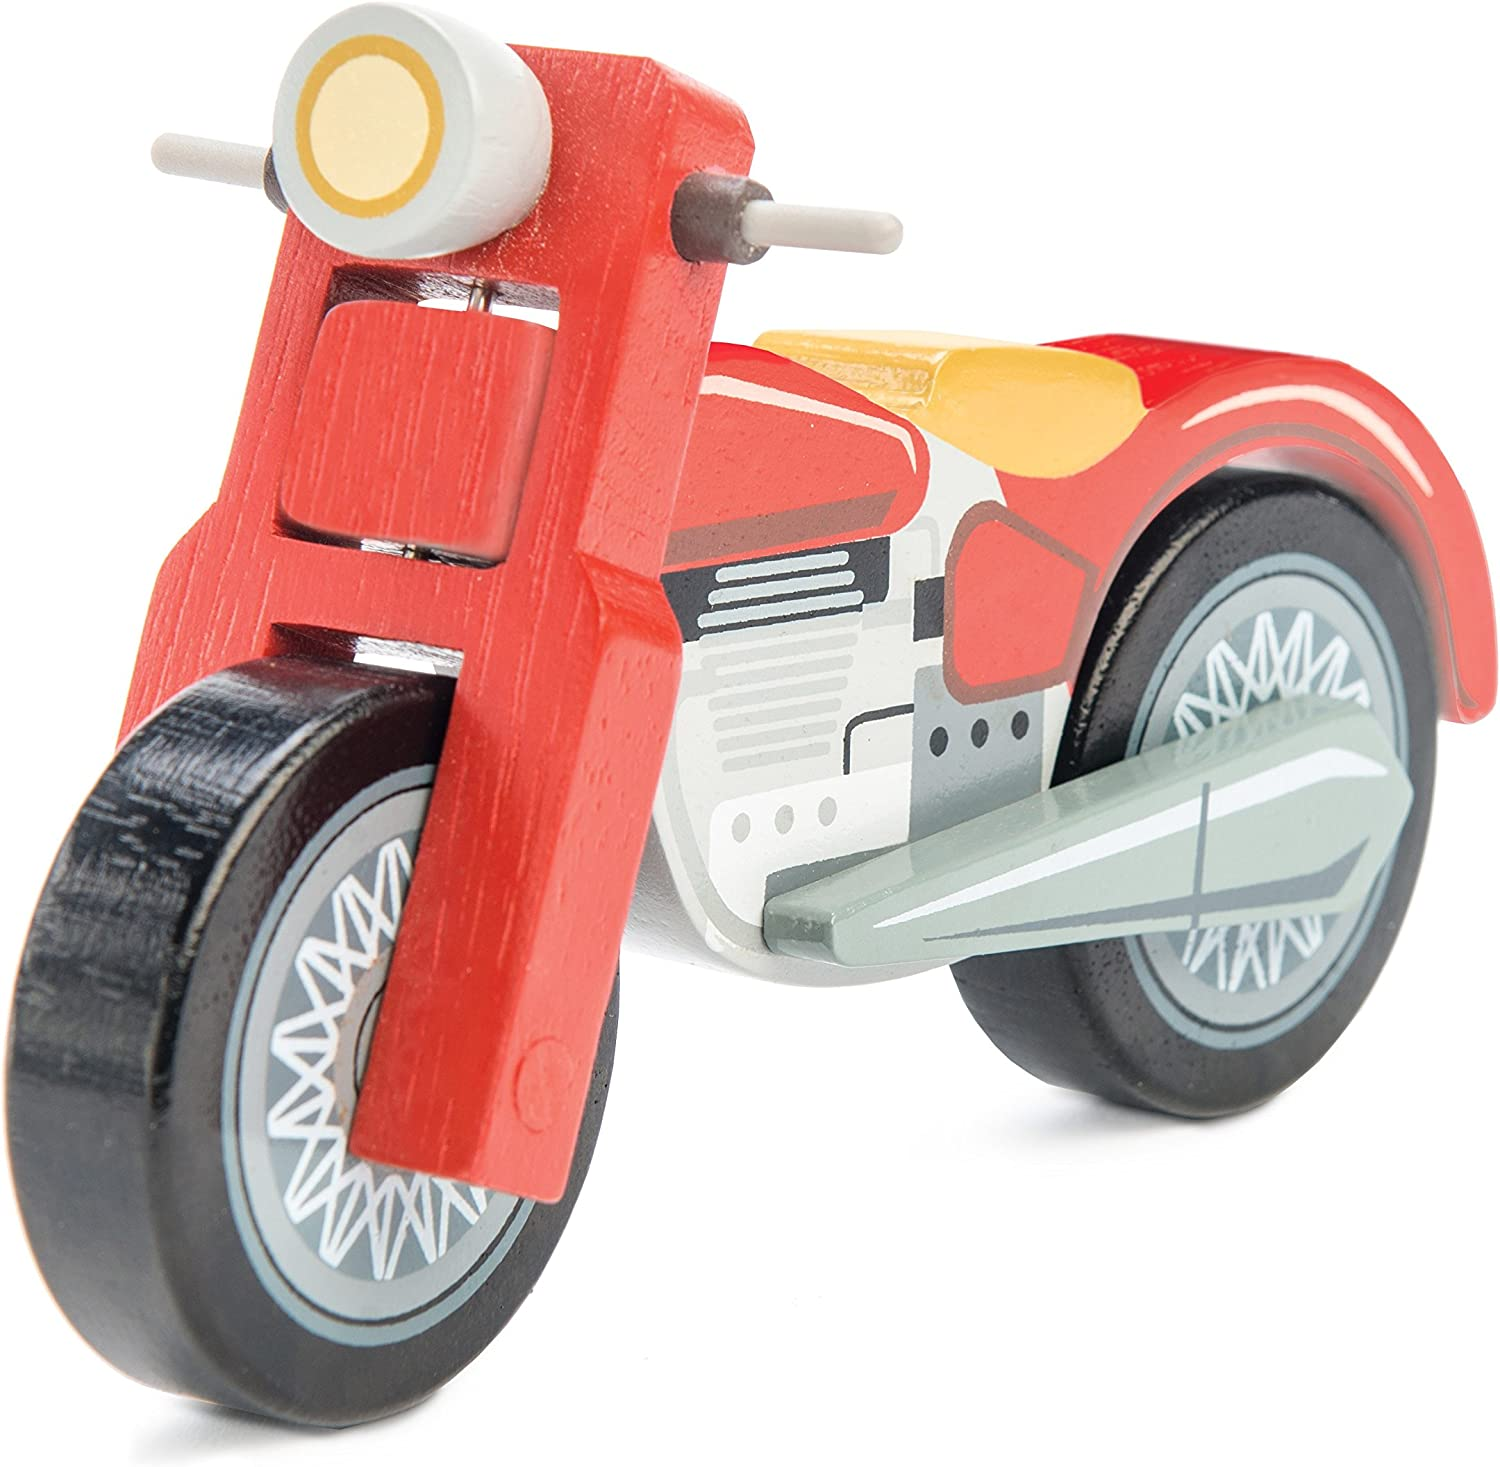 Le Toy Van Wooden Motorbike Premium Wooden Toys for Kids Ages 3 years & Up